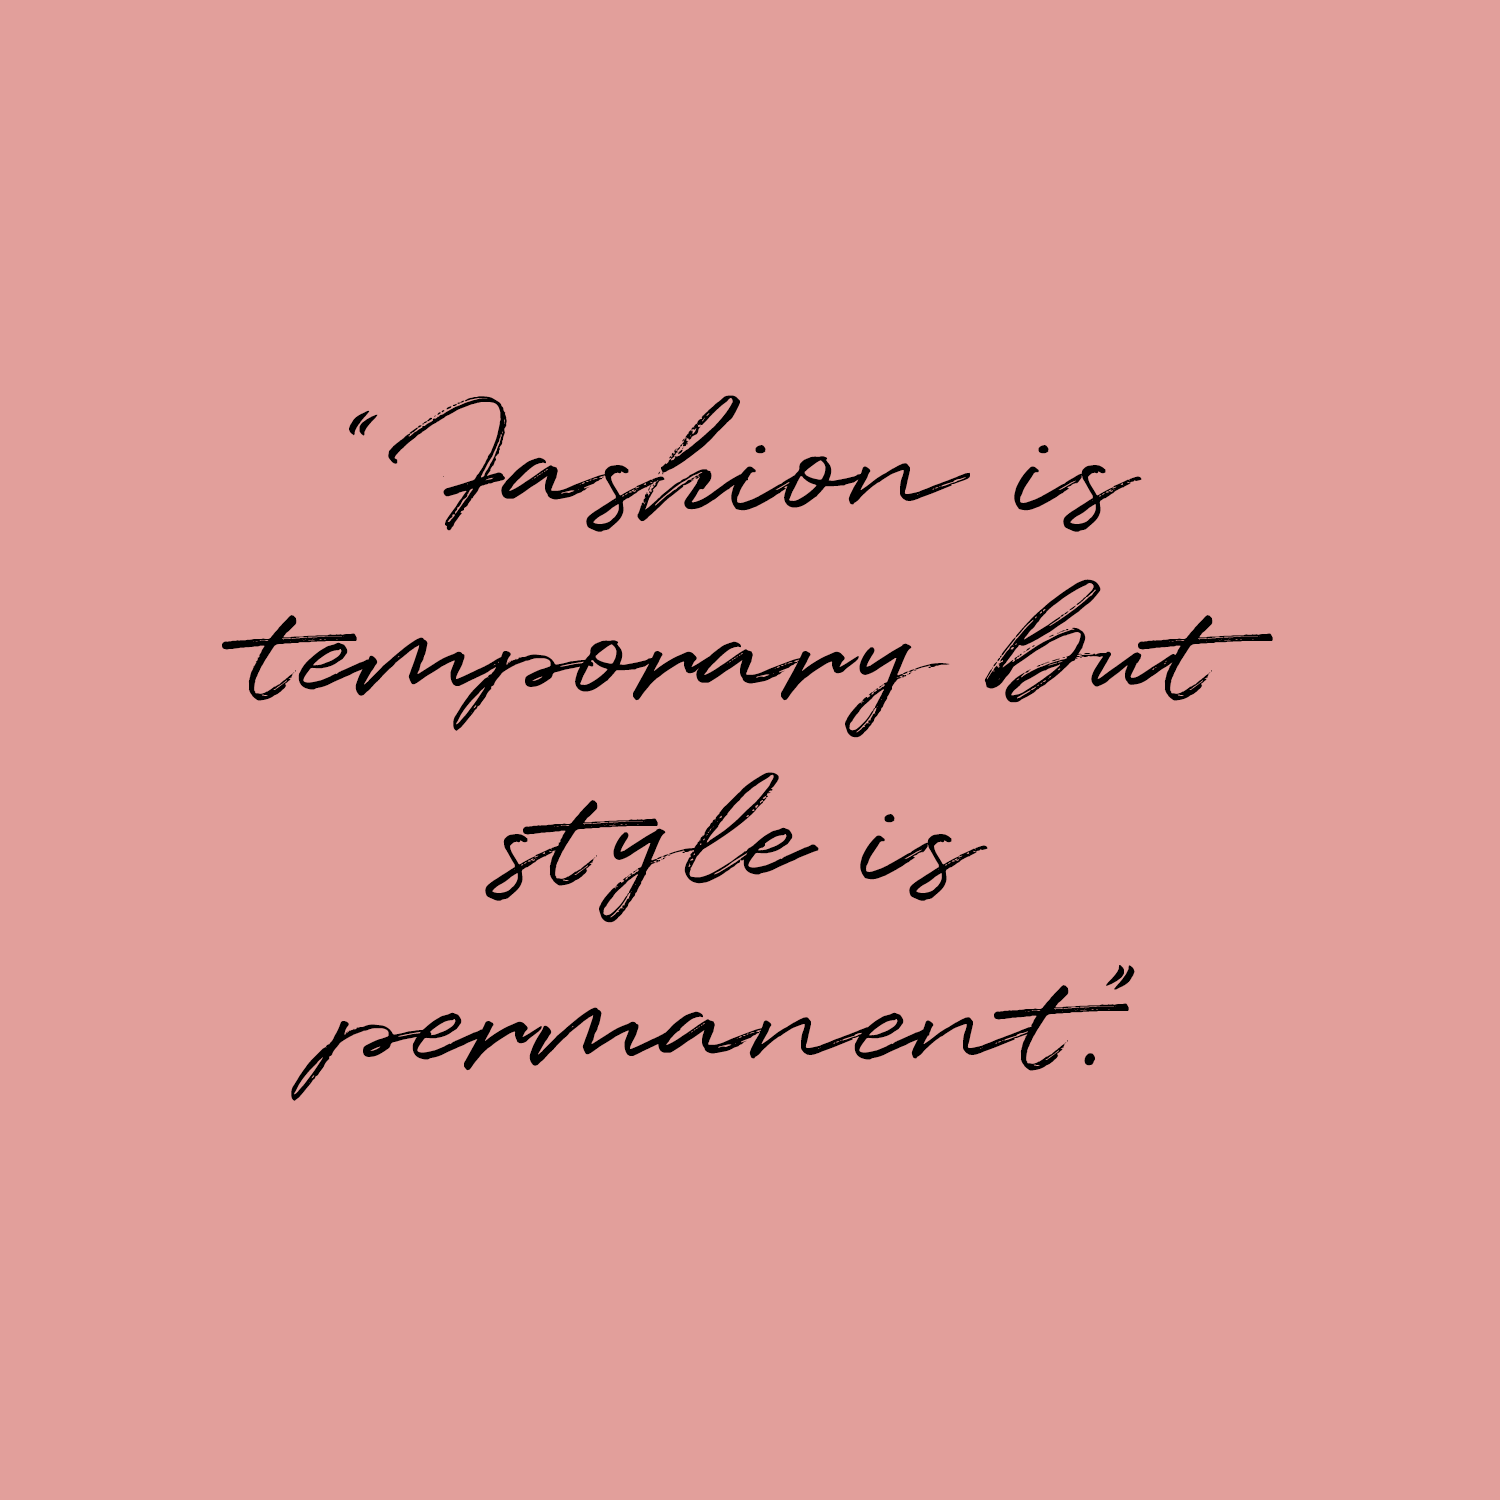 'Fashion is temporary but style is permanent' quote by Jigsaw